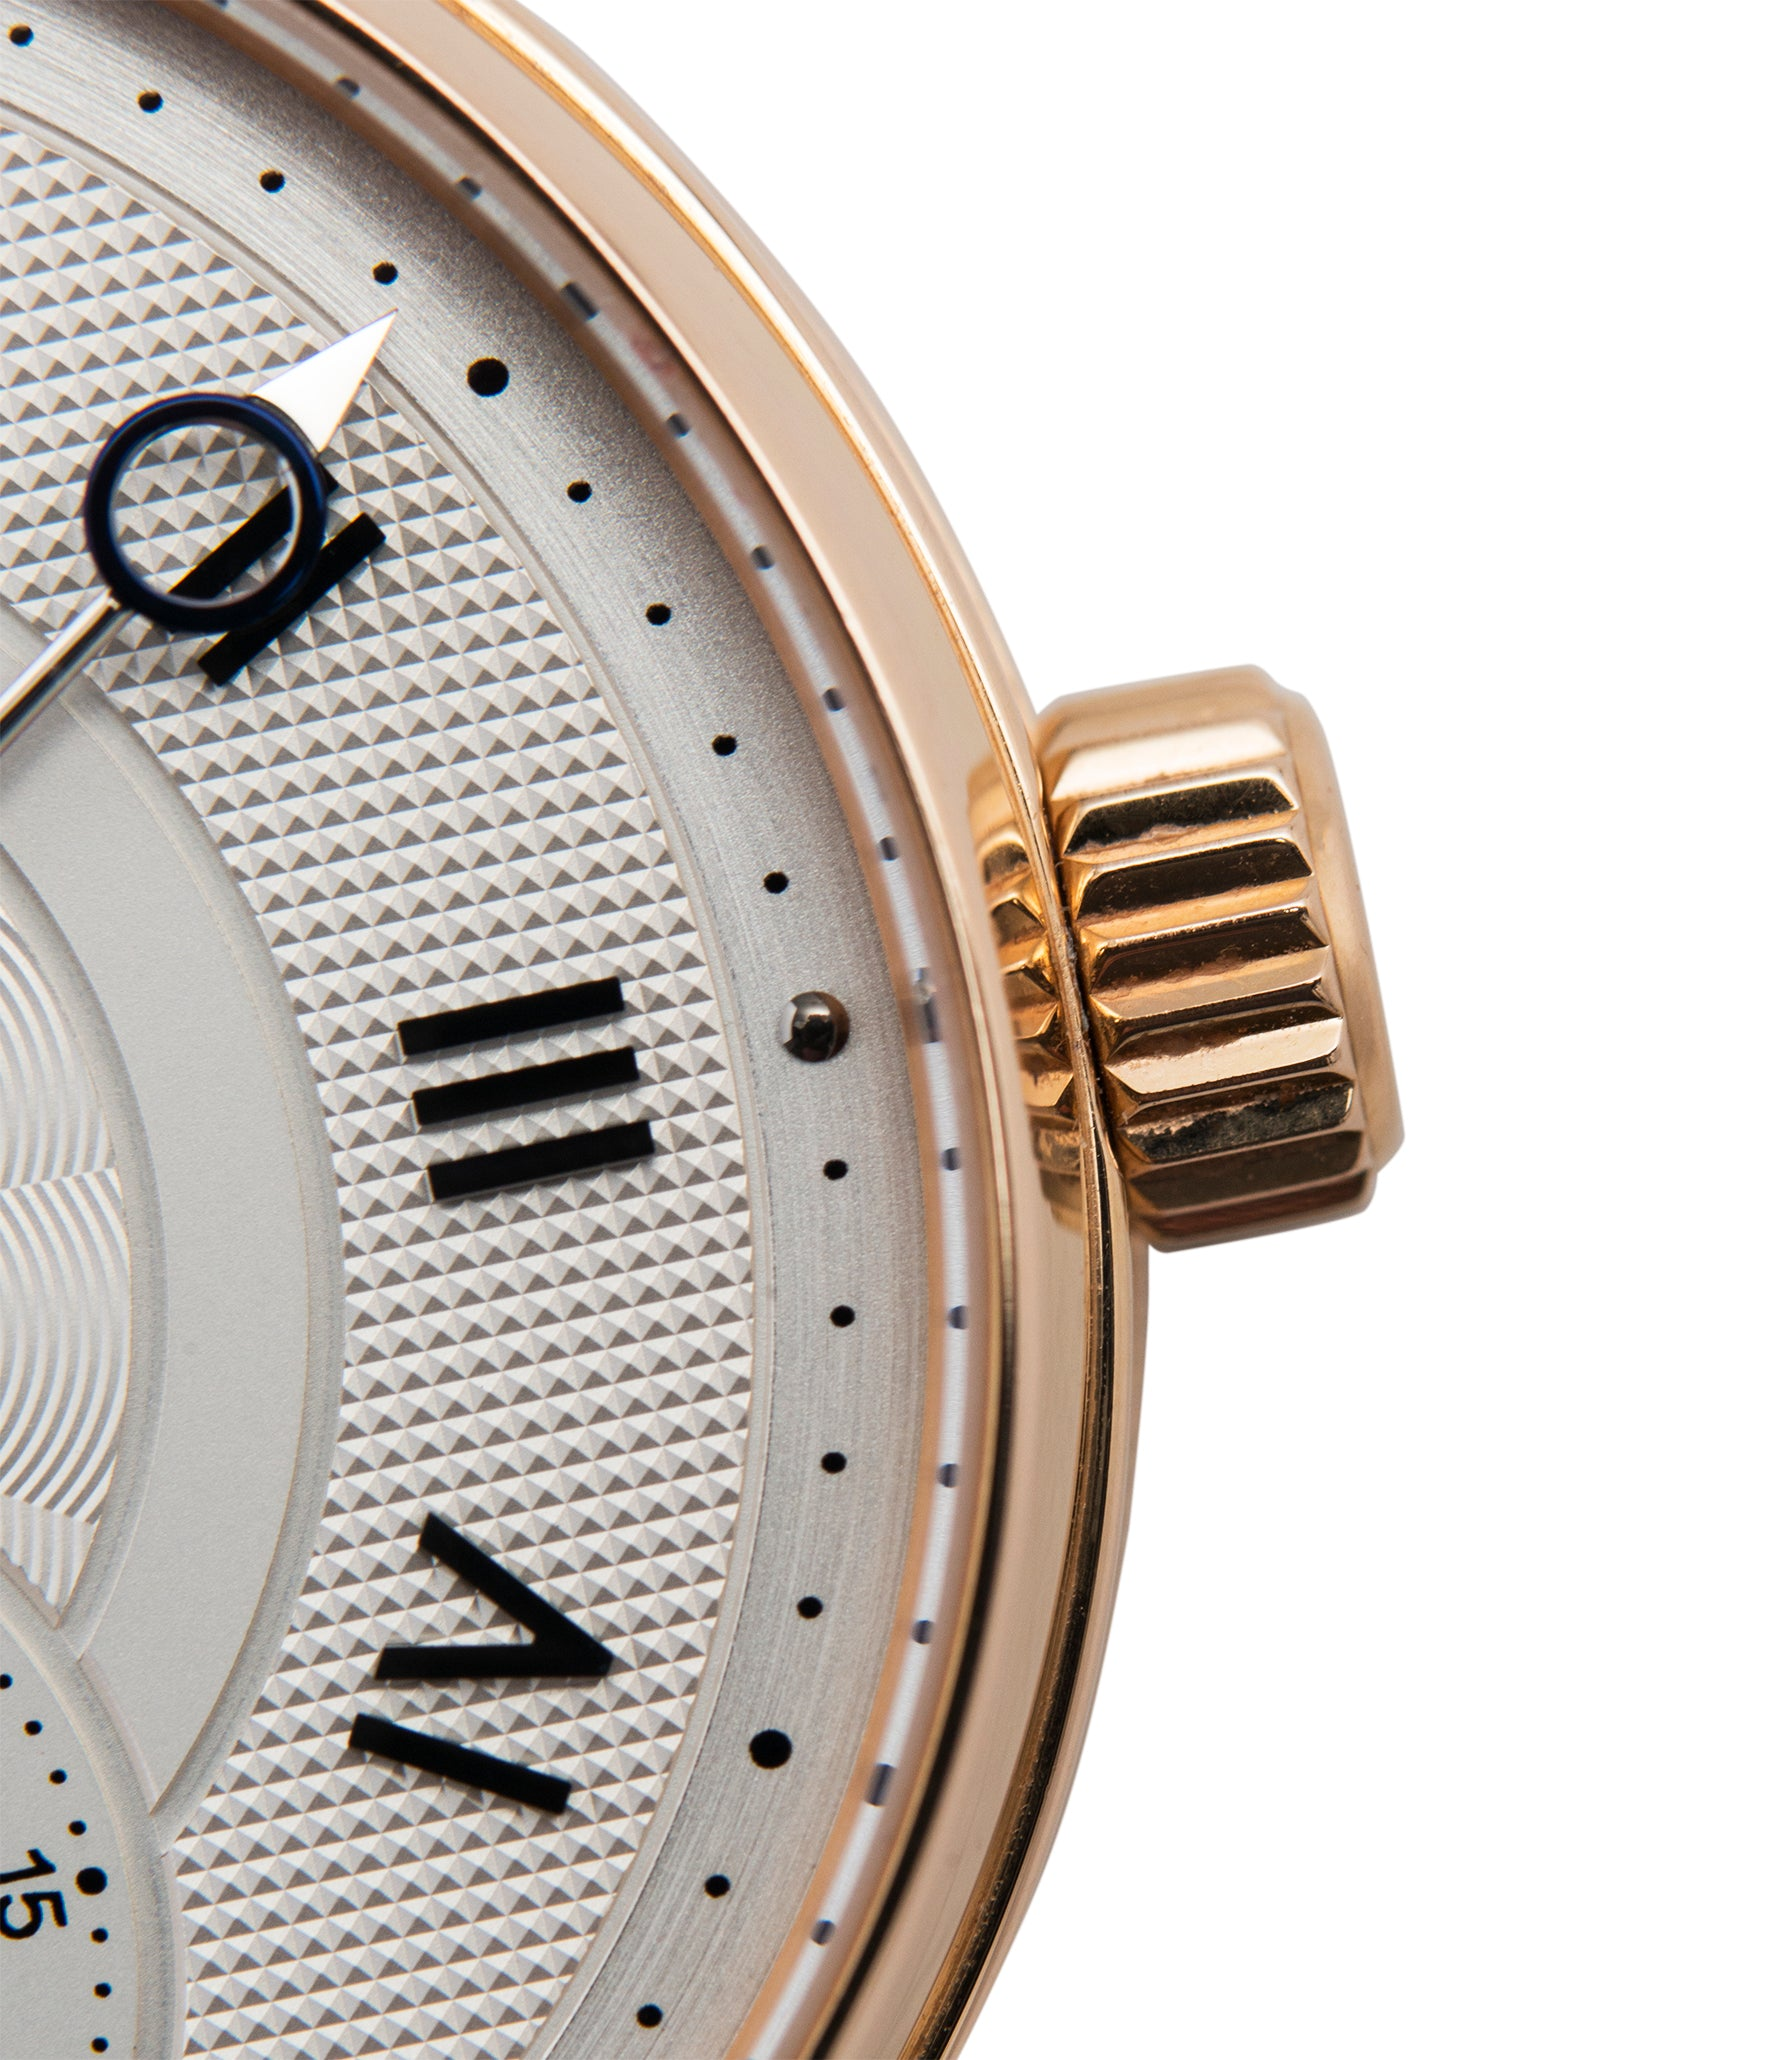 Roman numerals Voutilainen Observatoire Limited Edition rose gold rare dress watch for sale online at A Collected Man London endorsed seller of independent watchmaker